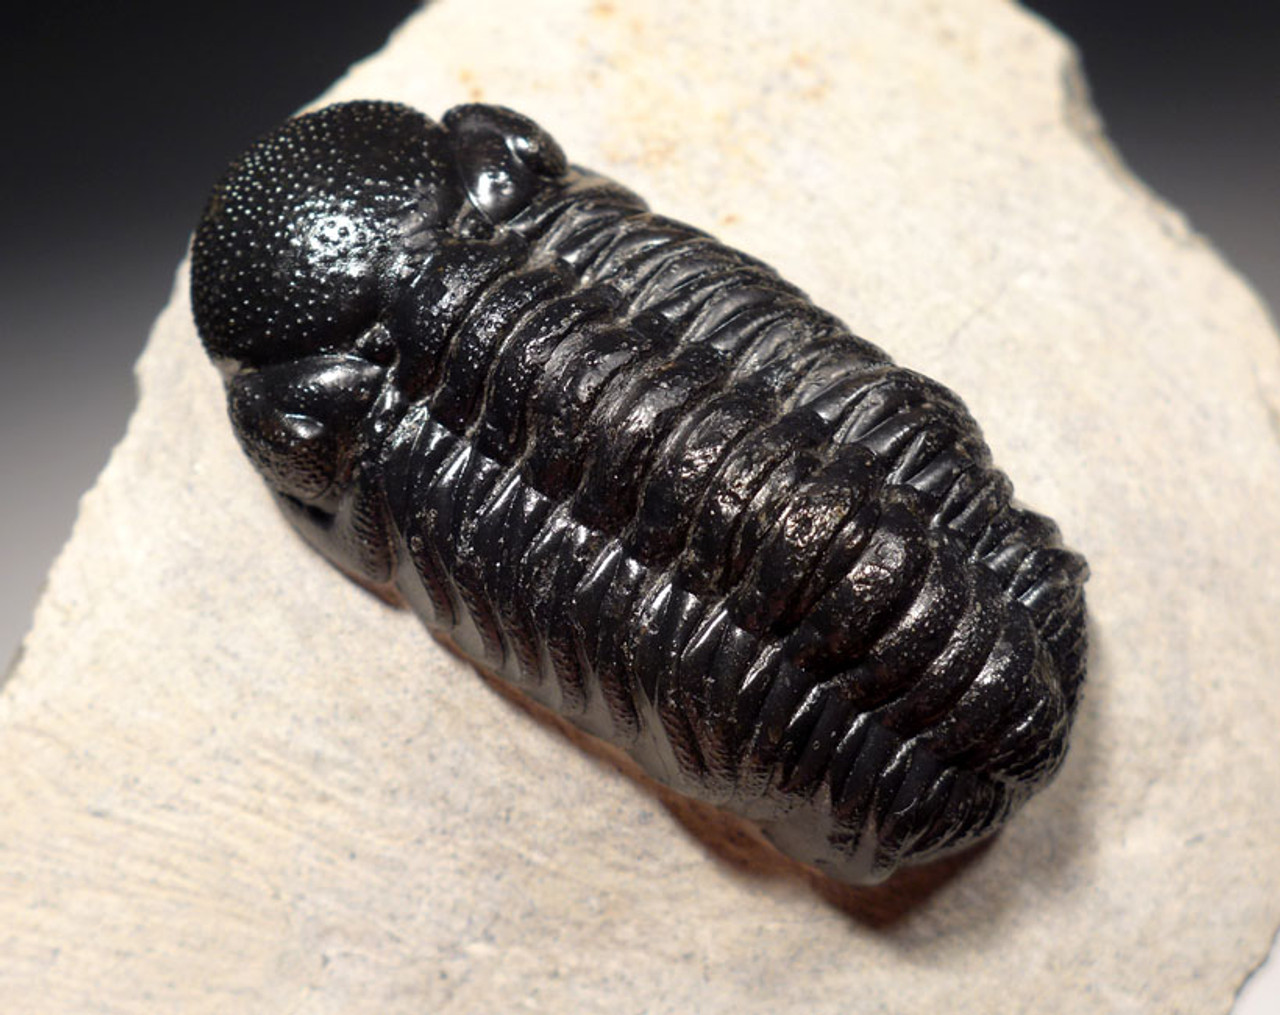 TRX454 - FINEST QUALITY PHACOPS DEVONIAN TRILOBITE FOSSIL WITH EYE LENS DETAIL